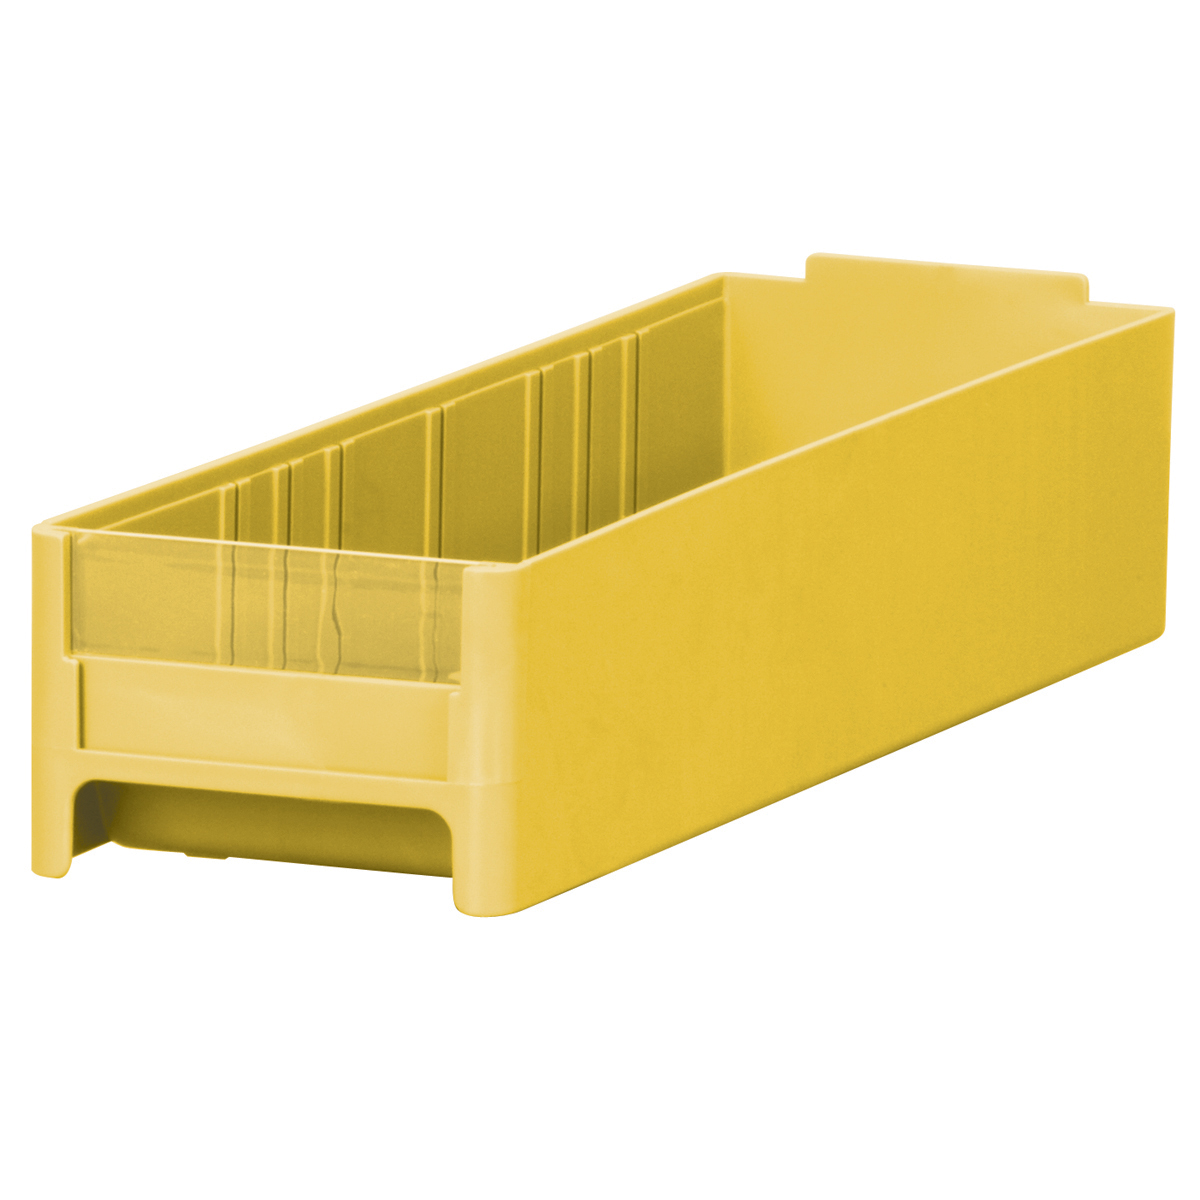 19-Series Cabinet Drawer 3-3/16 x 2-1/16 x 10-9/16, Yellow.  This item sold in carton quantities of 40.